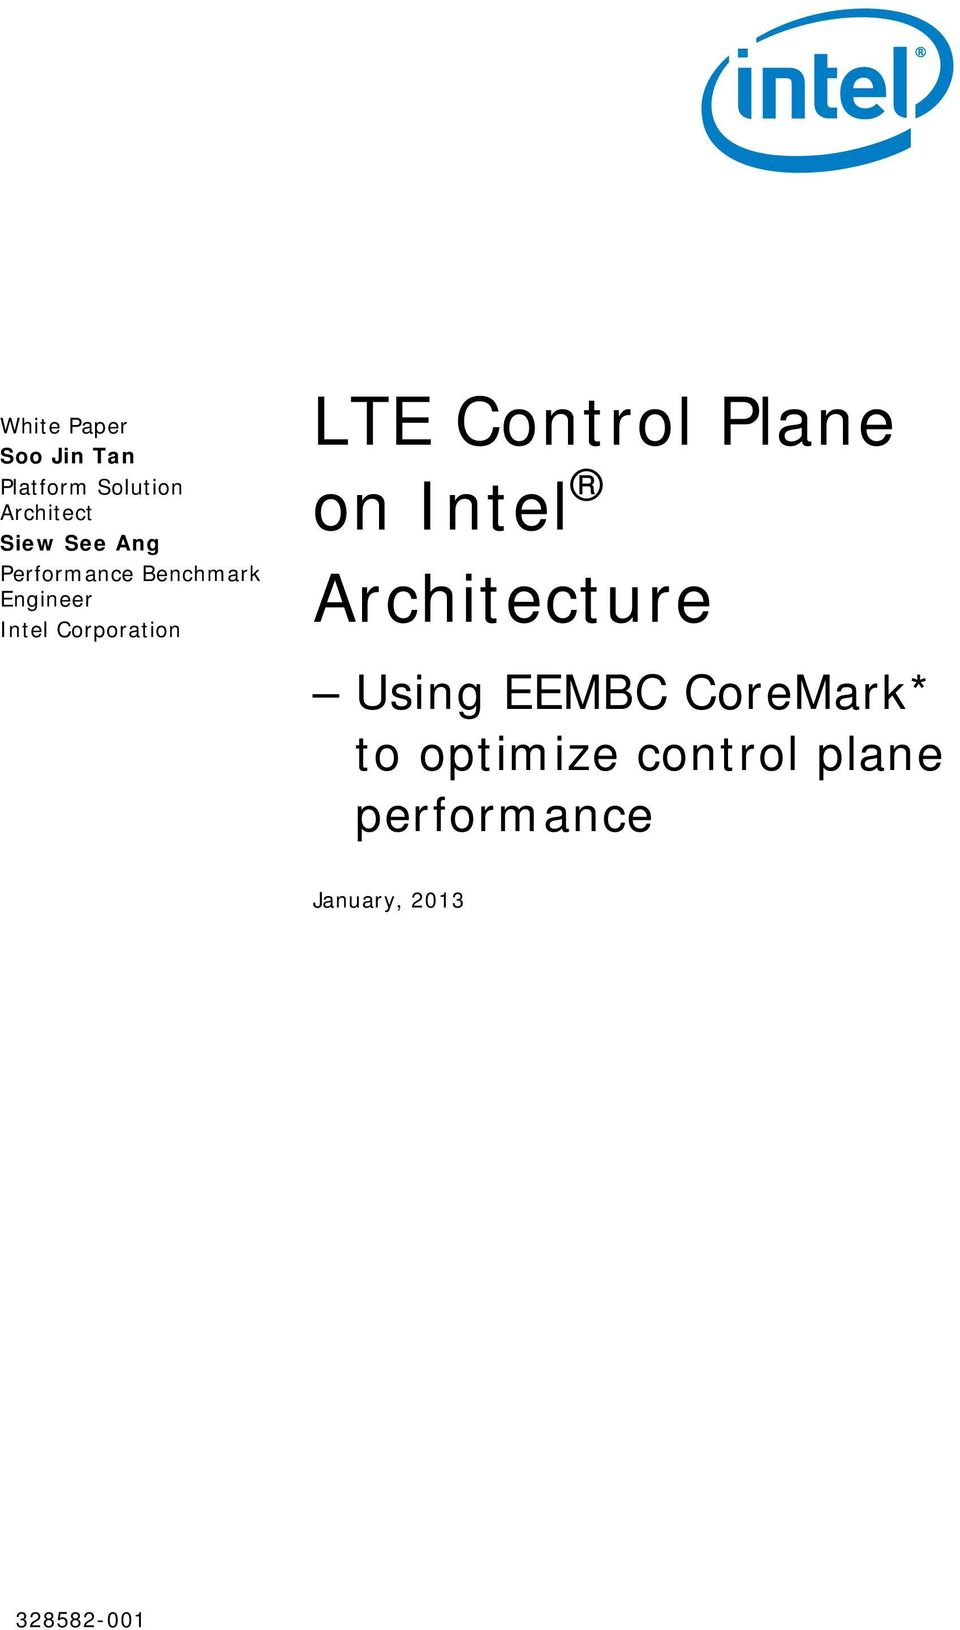 LTE Control Plane on Intel Architecture Using EEMBC